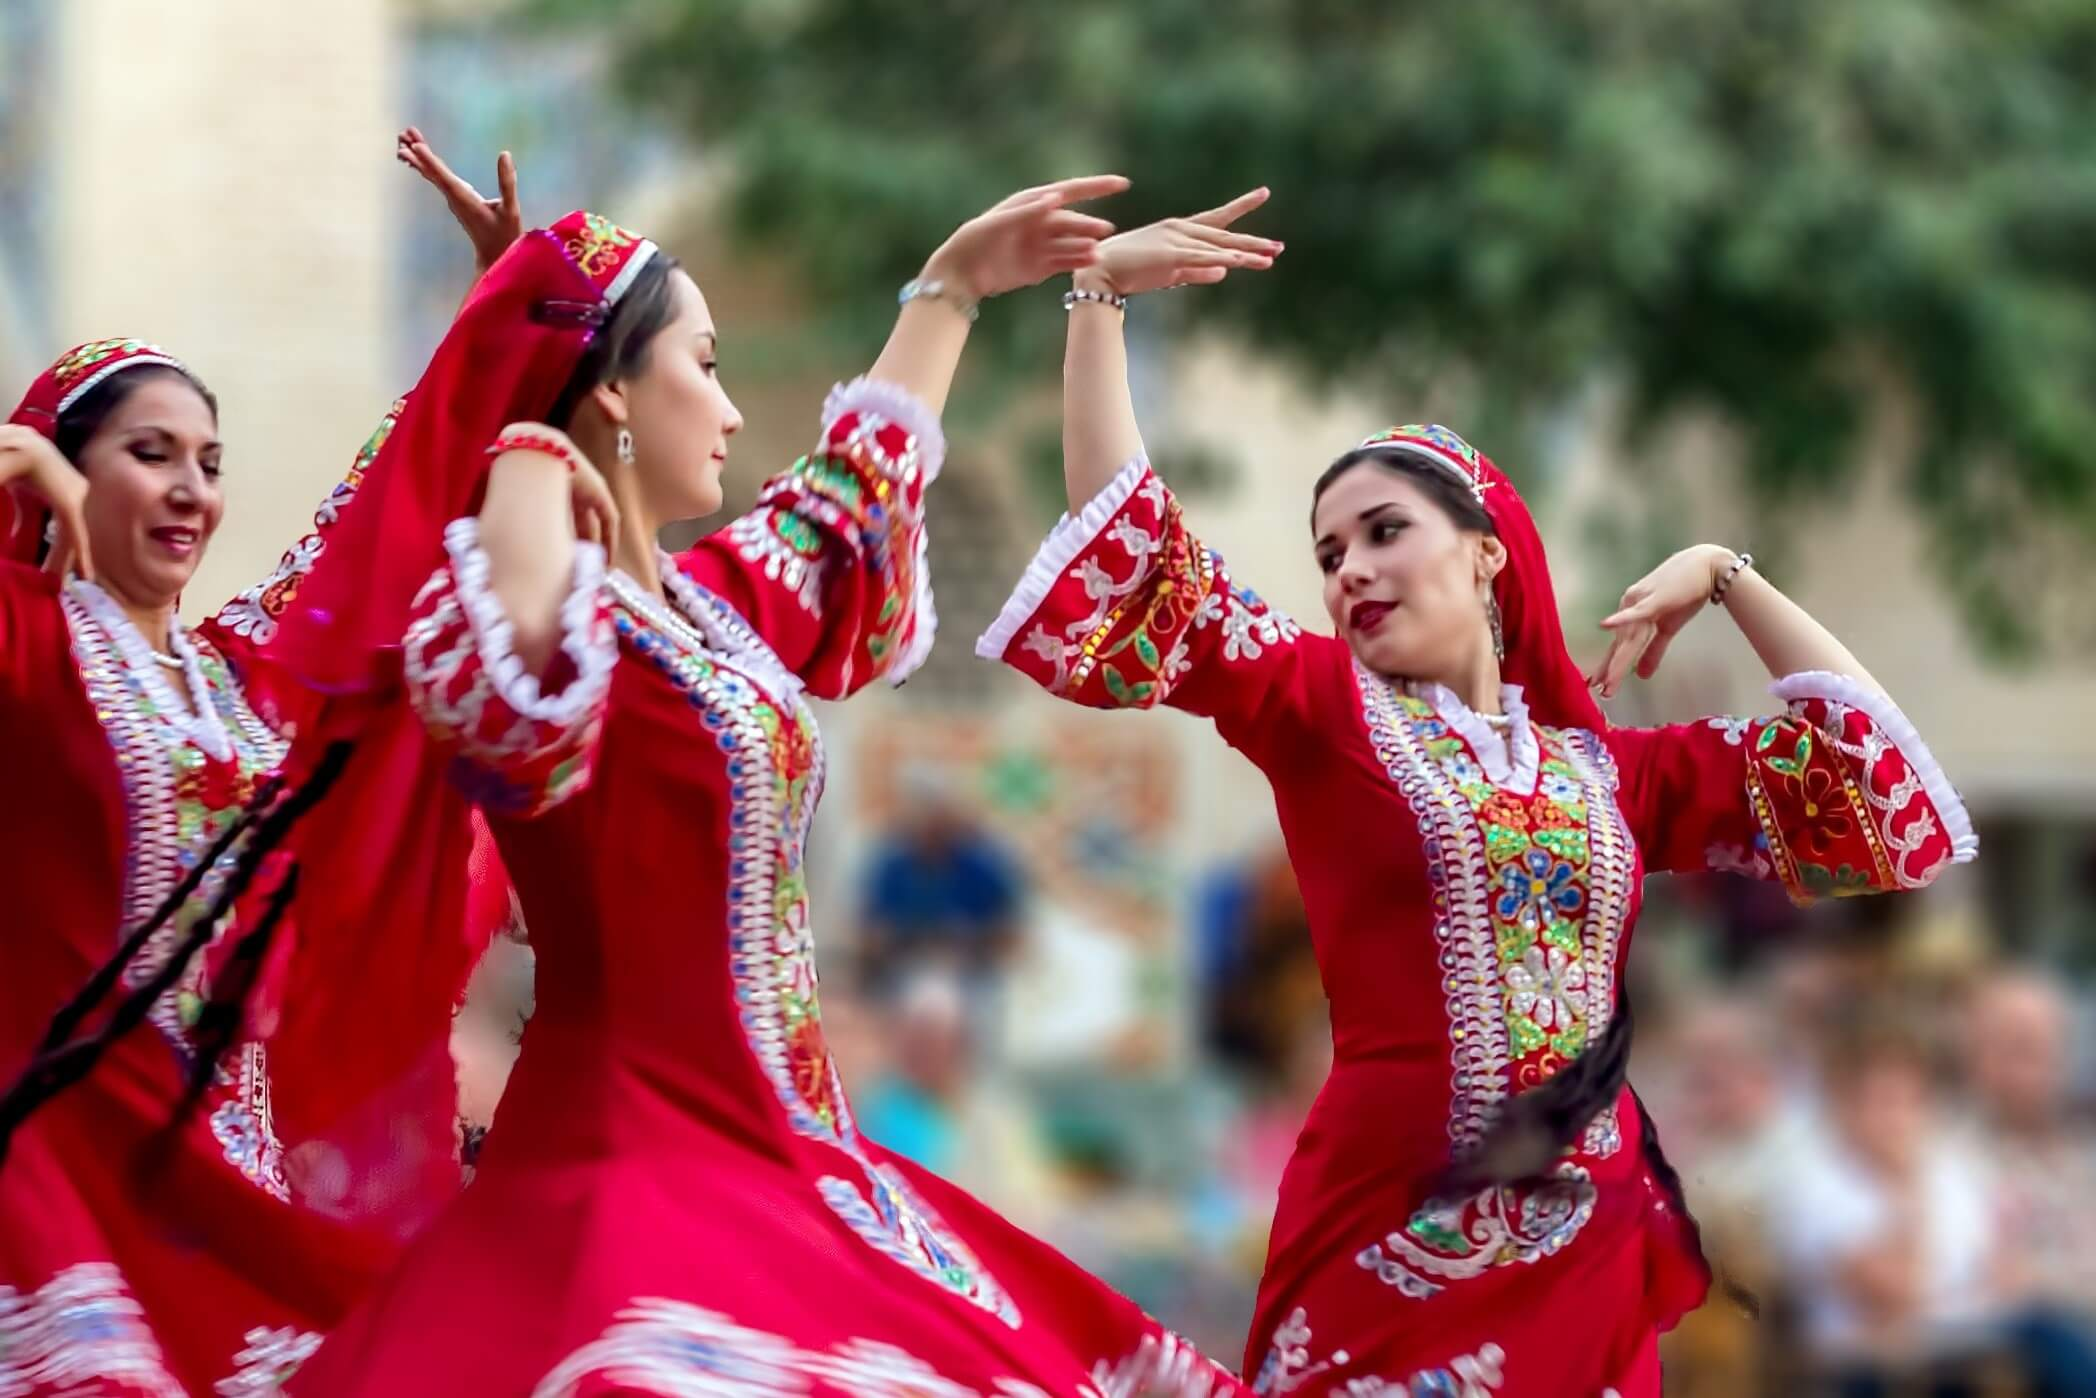 Uzbekistan to Throw its Doors Open to Tax-free Cryptocurrency Trading